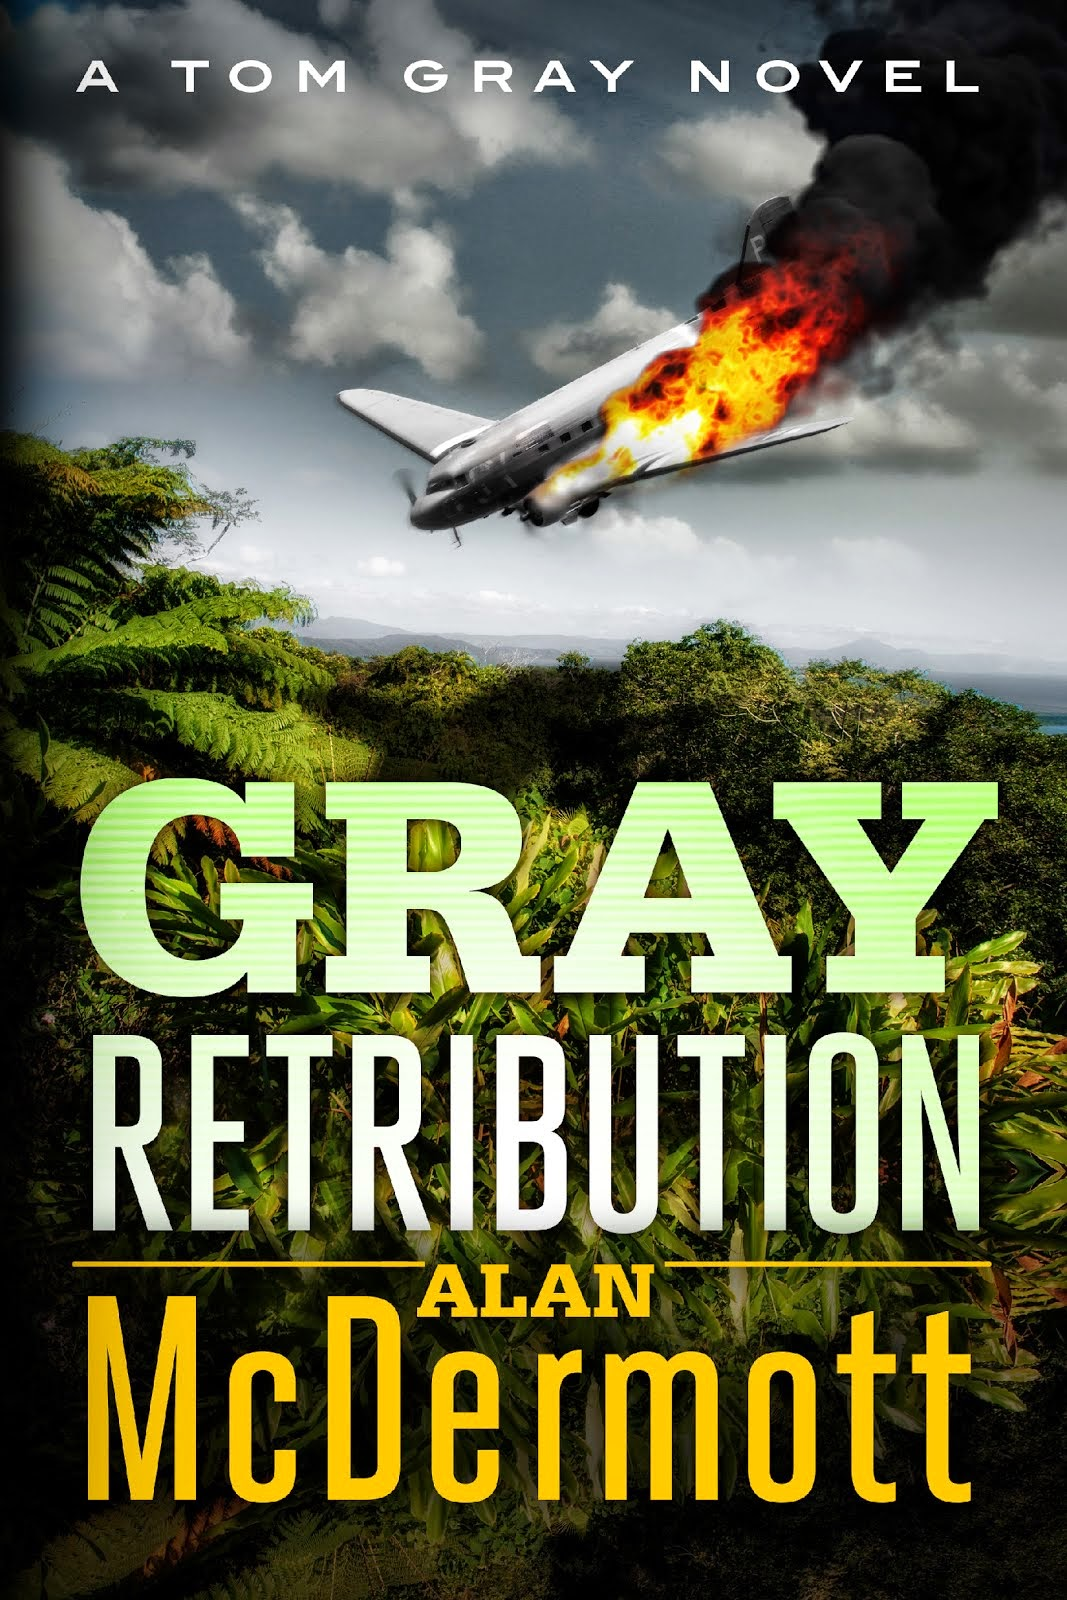 Gray Retribution